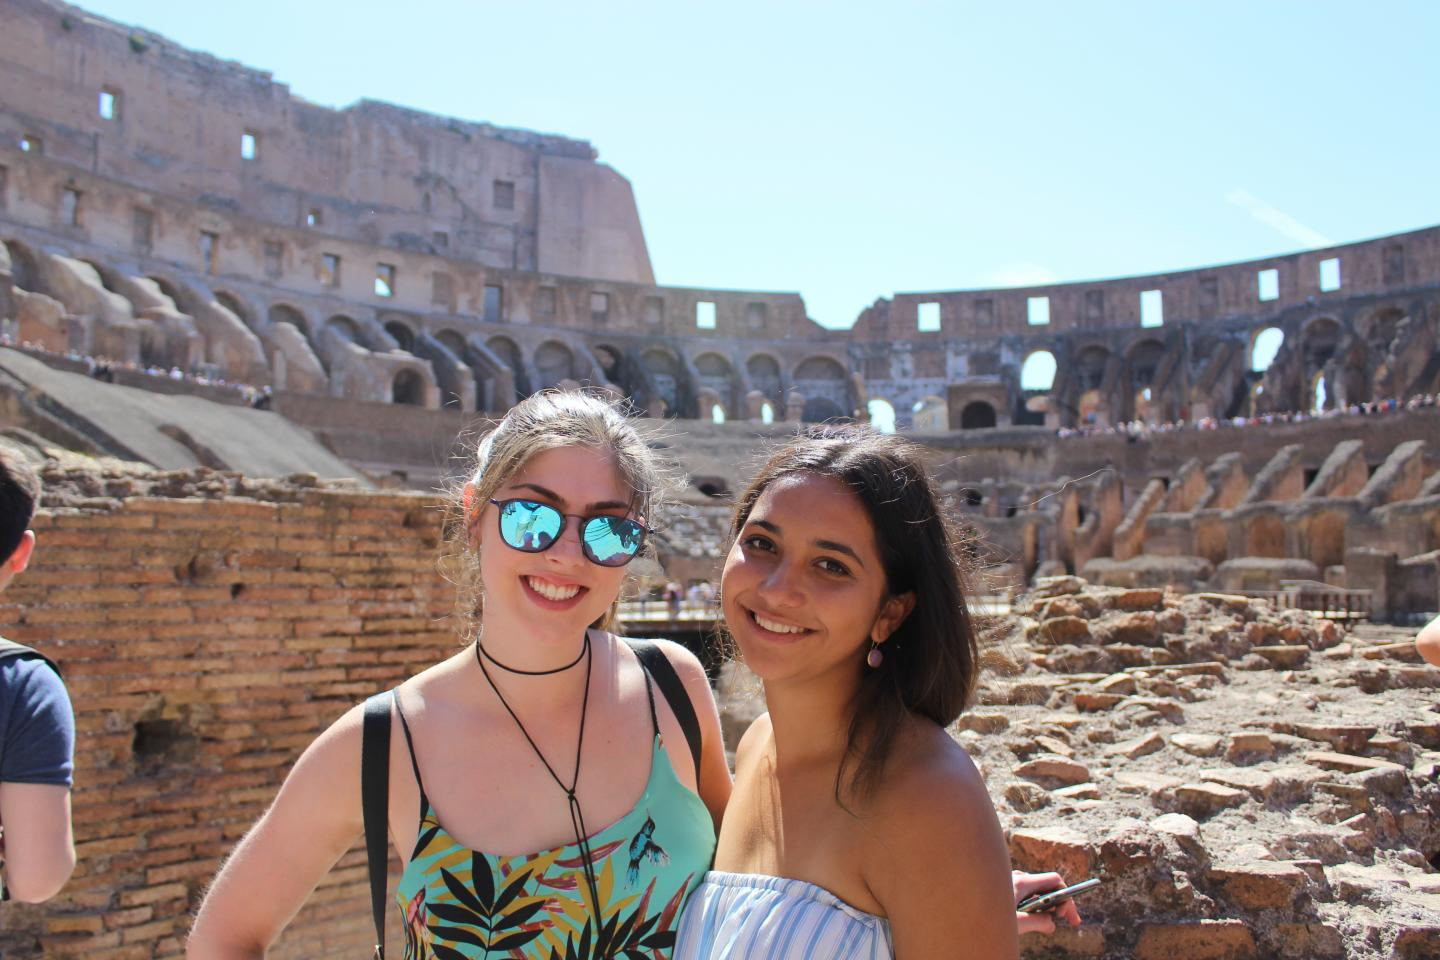 High school students smile in the Colosseum in Rome during their summer tour in Italy, Europe